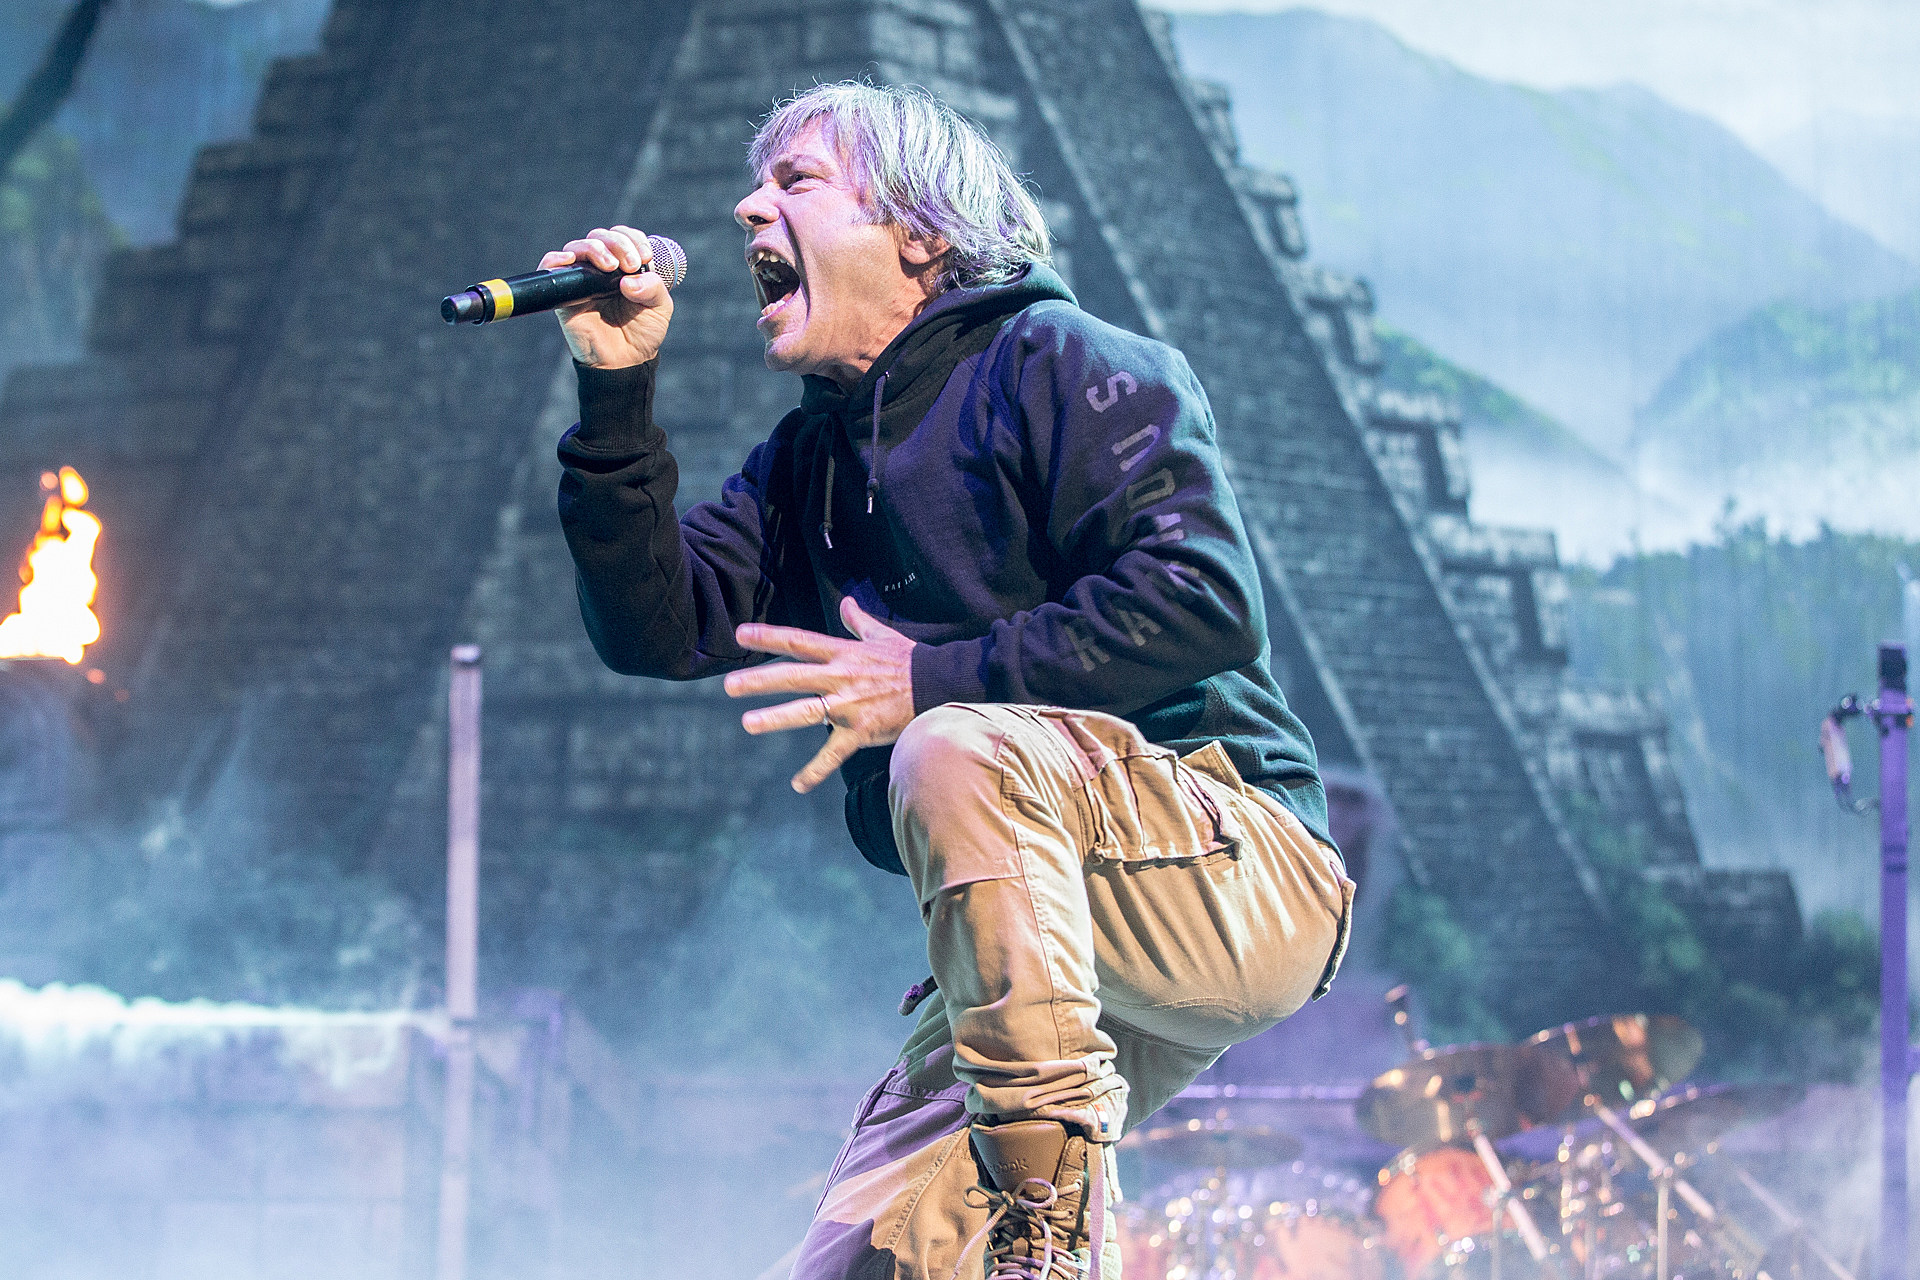 Iron Maiden Write Brooklyn Chapter of 'The Book of Souls' With Sold Out Show [Photos + Review]